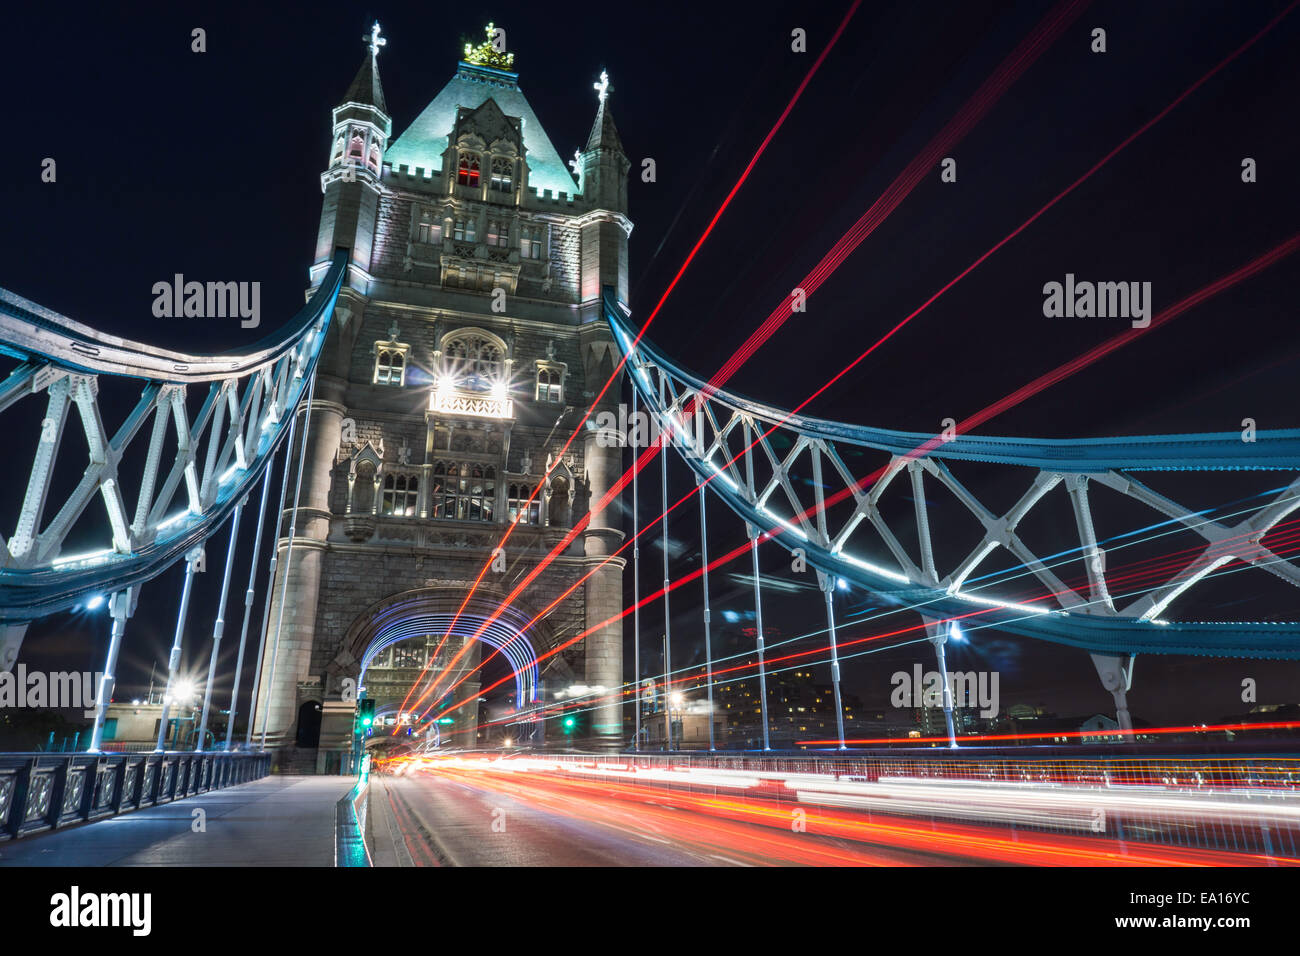 Must see Wallpaper Night London - dramatic-night-shot-of-tower-bridge-london-with-light-trails-EA16YC  Graphic-307648.jpg